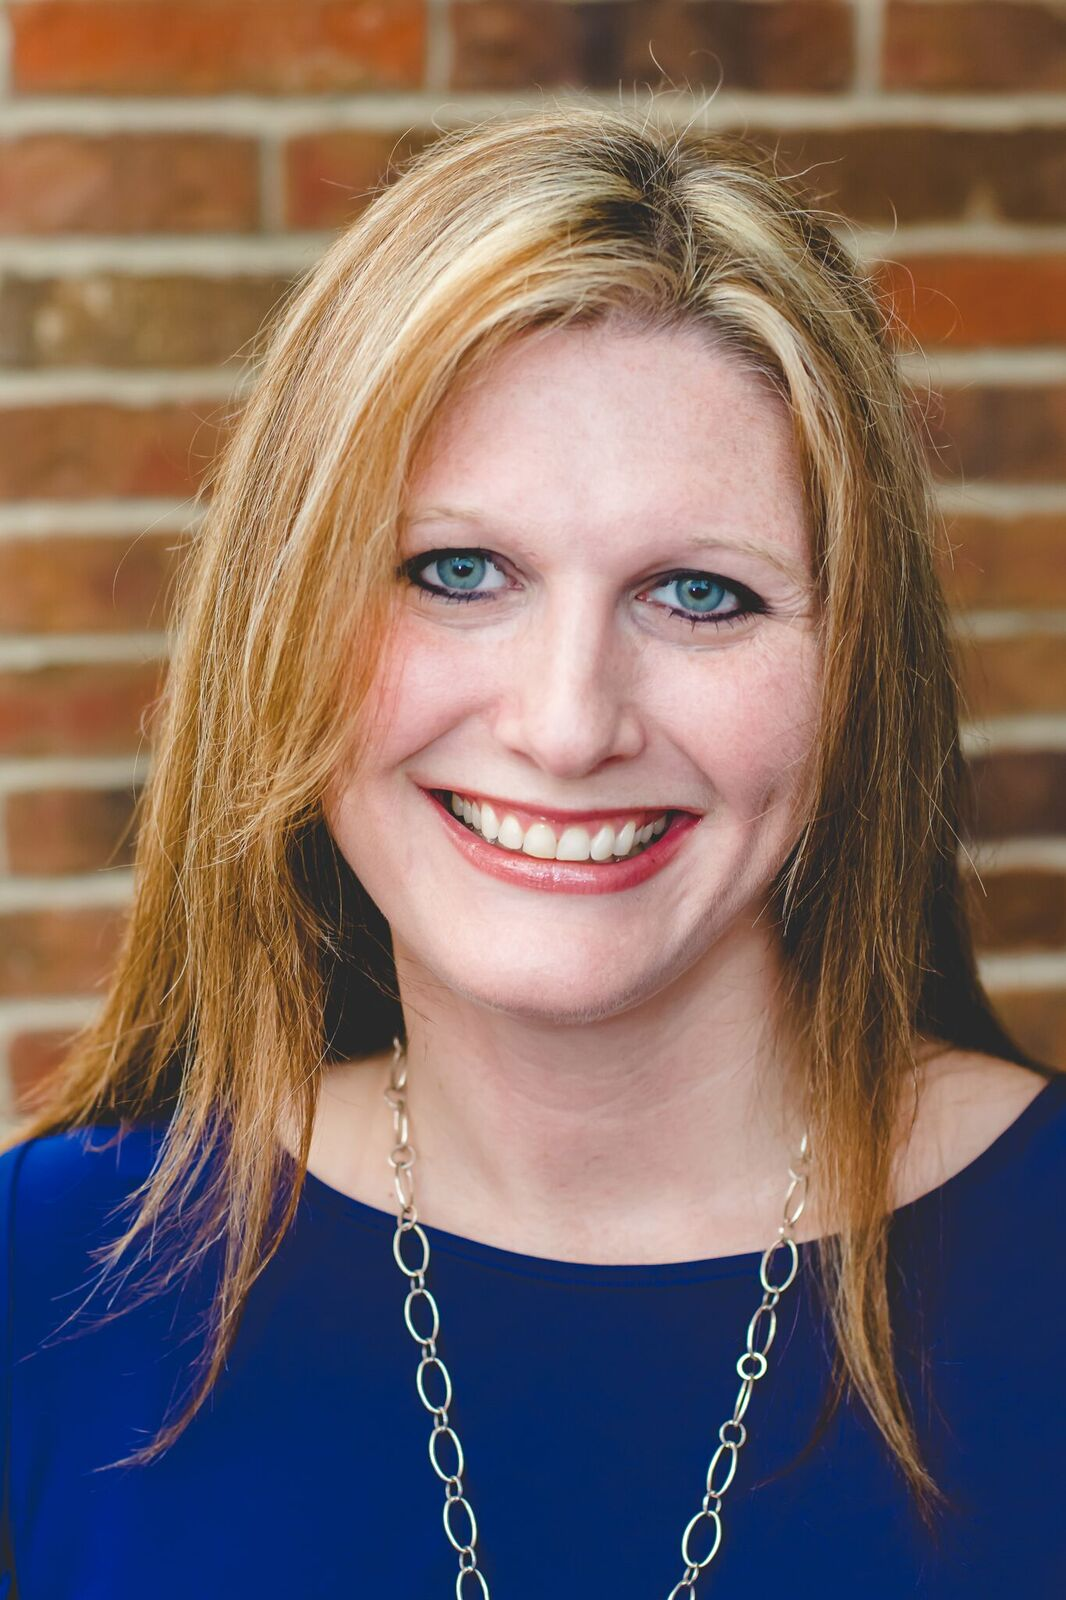 Melissa Young Joins Team Taycor